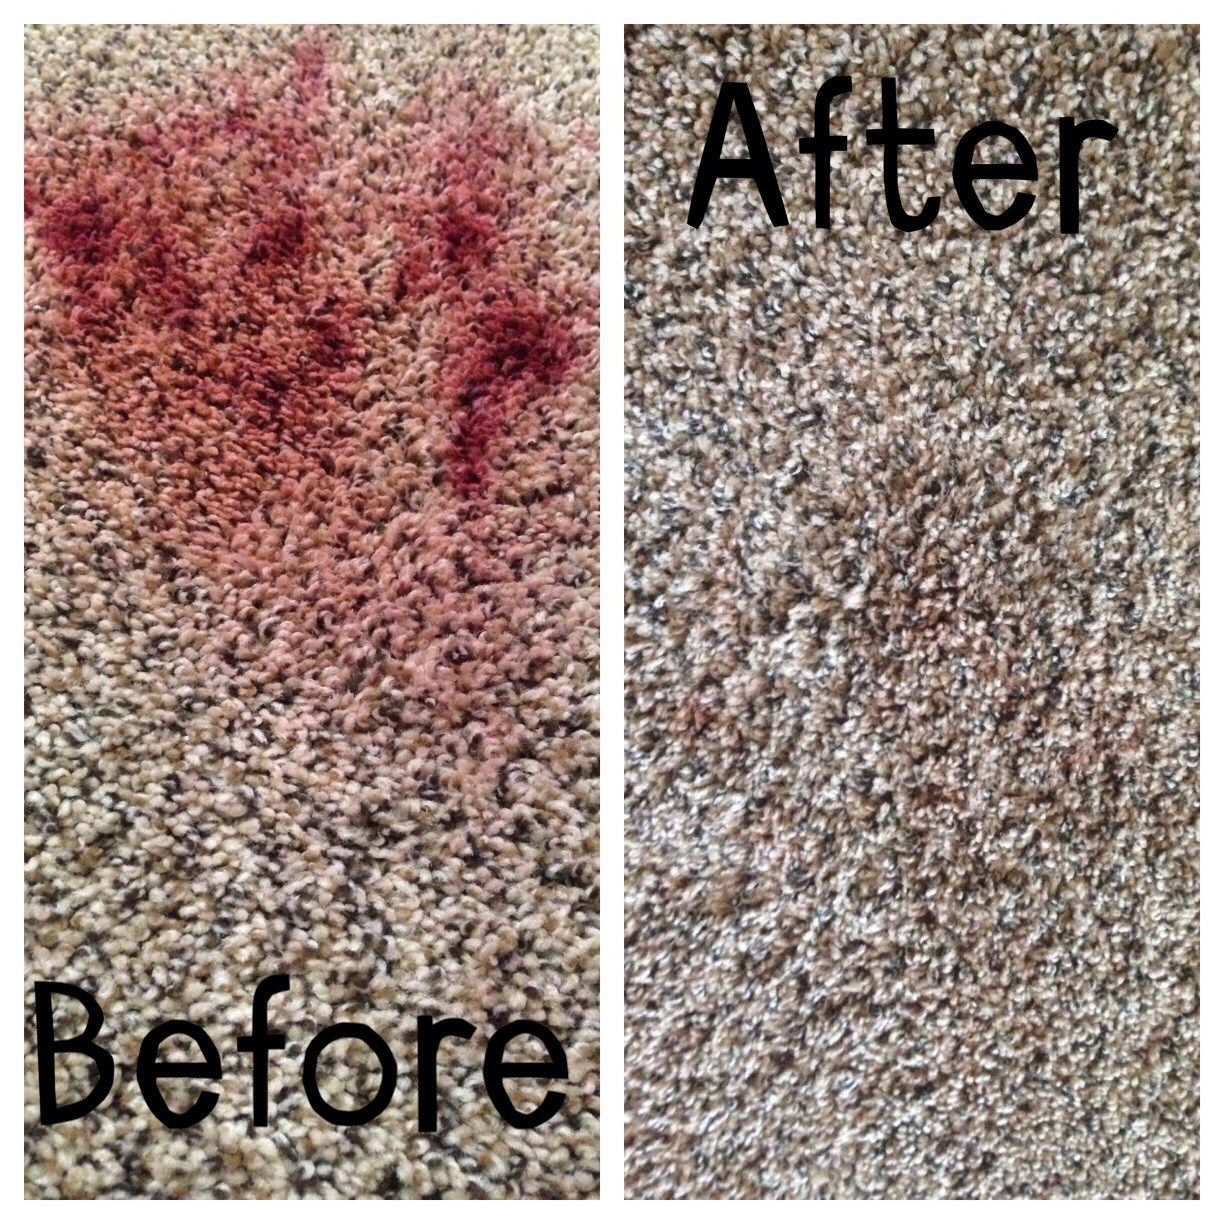 How to remove red lipstick from your carpet with common